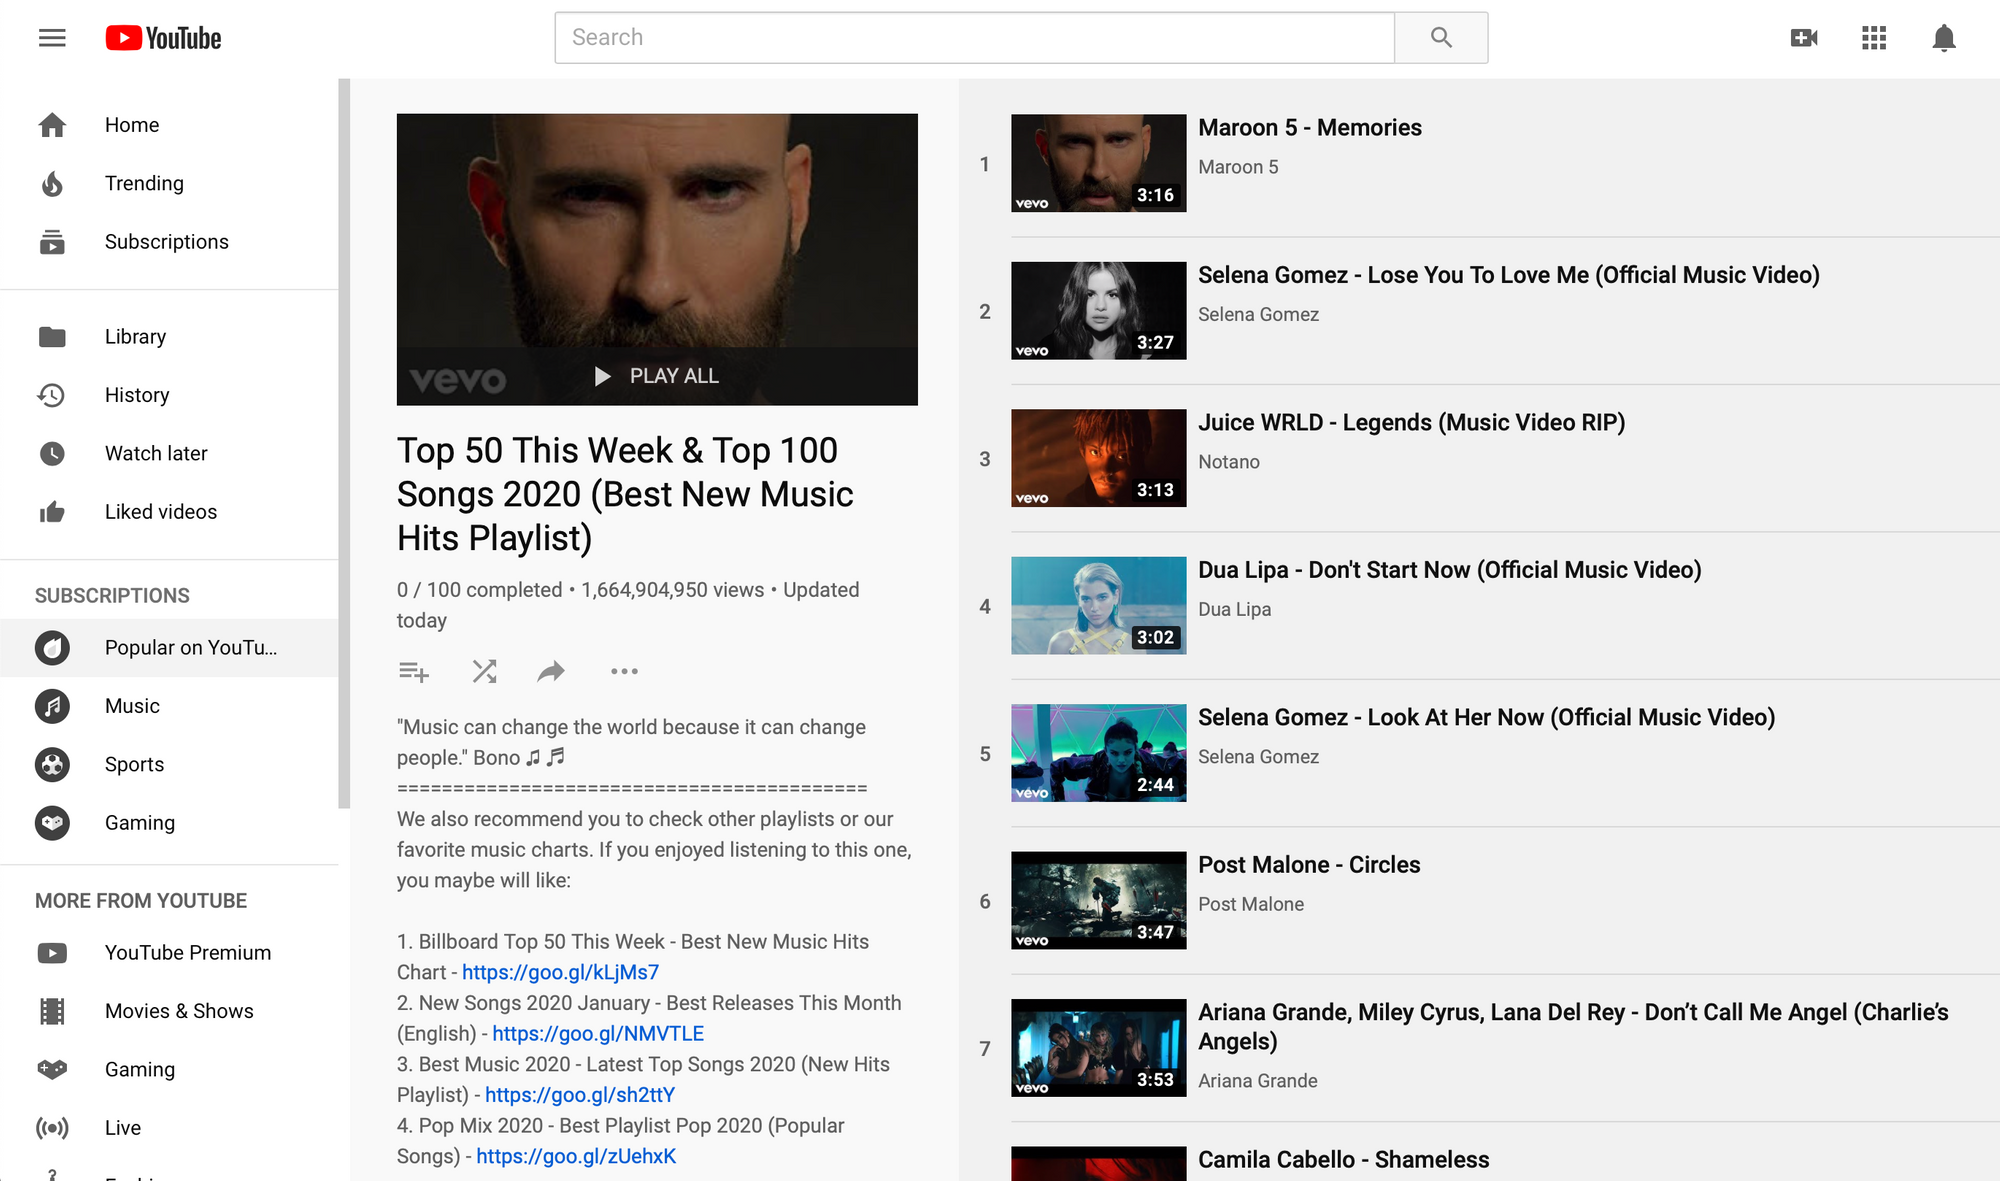 Top Youtube Playlists To Get Your Music On Hypebot